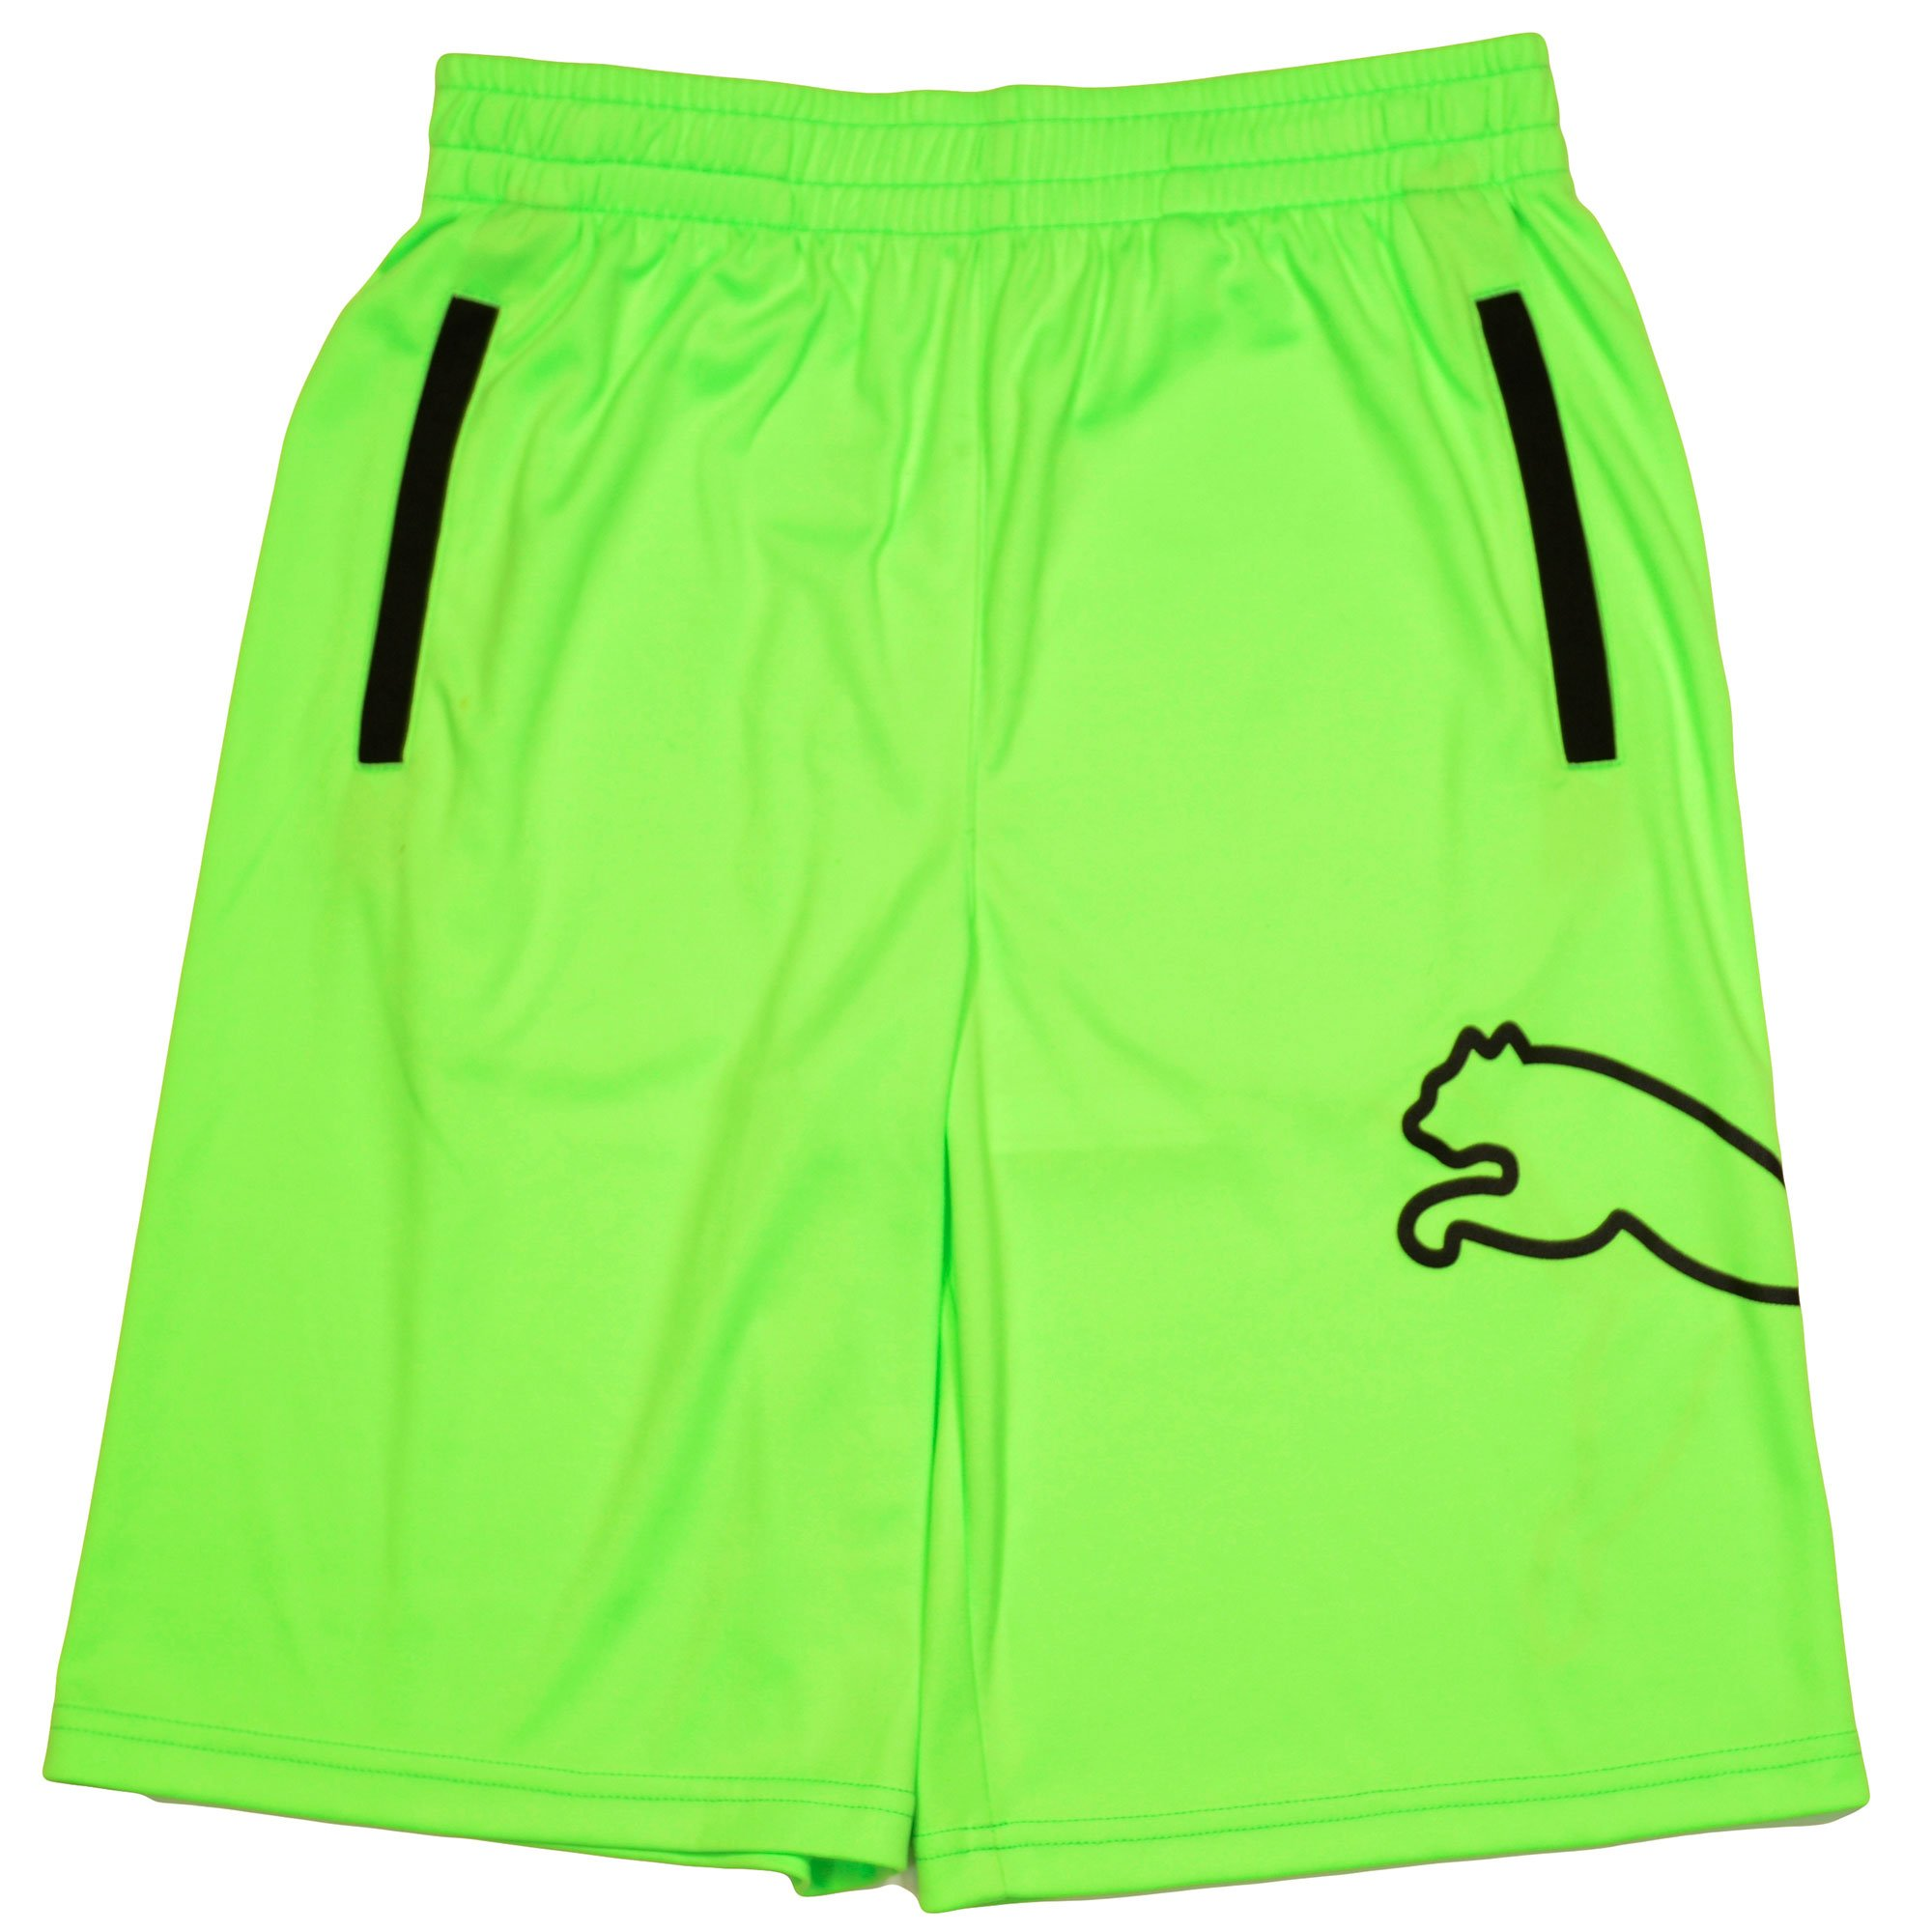 PUMA Big-Kid Loose Fit Breathable Dry Fit Moisture Wicking Shorts Green Medium by PUMA